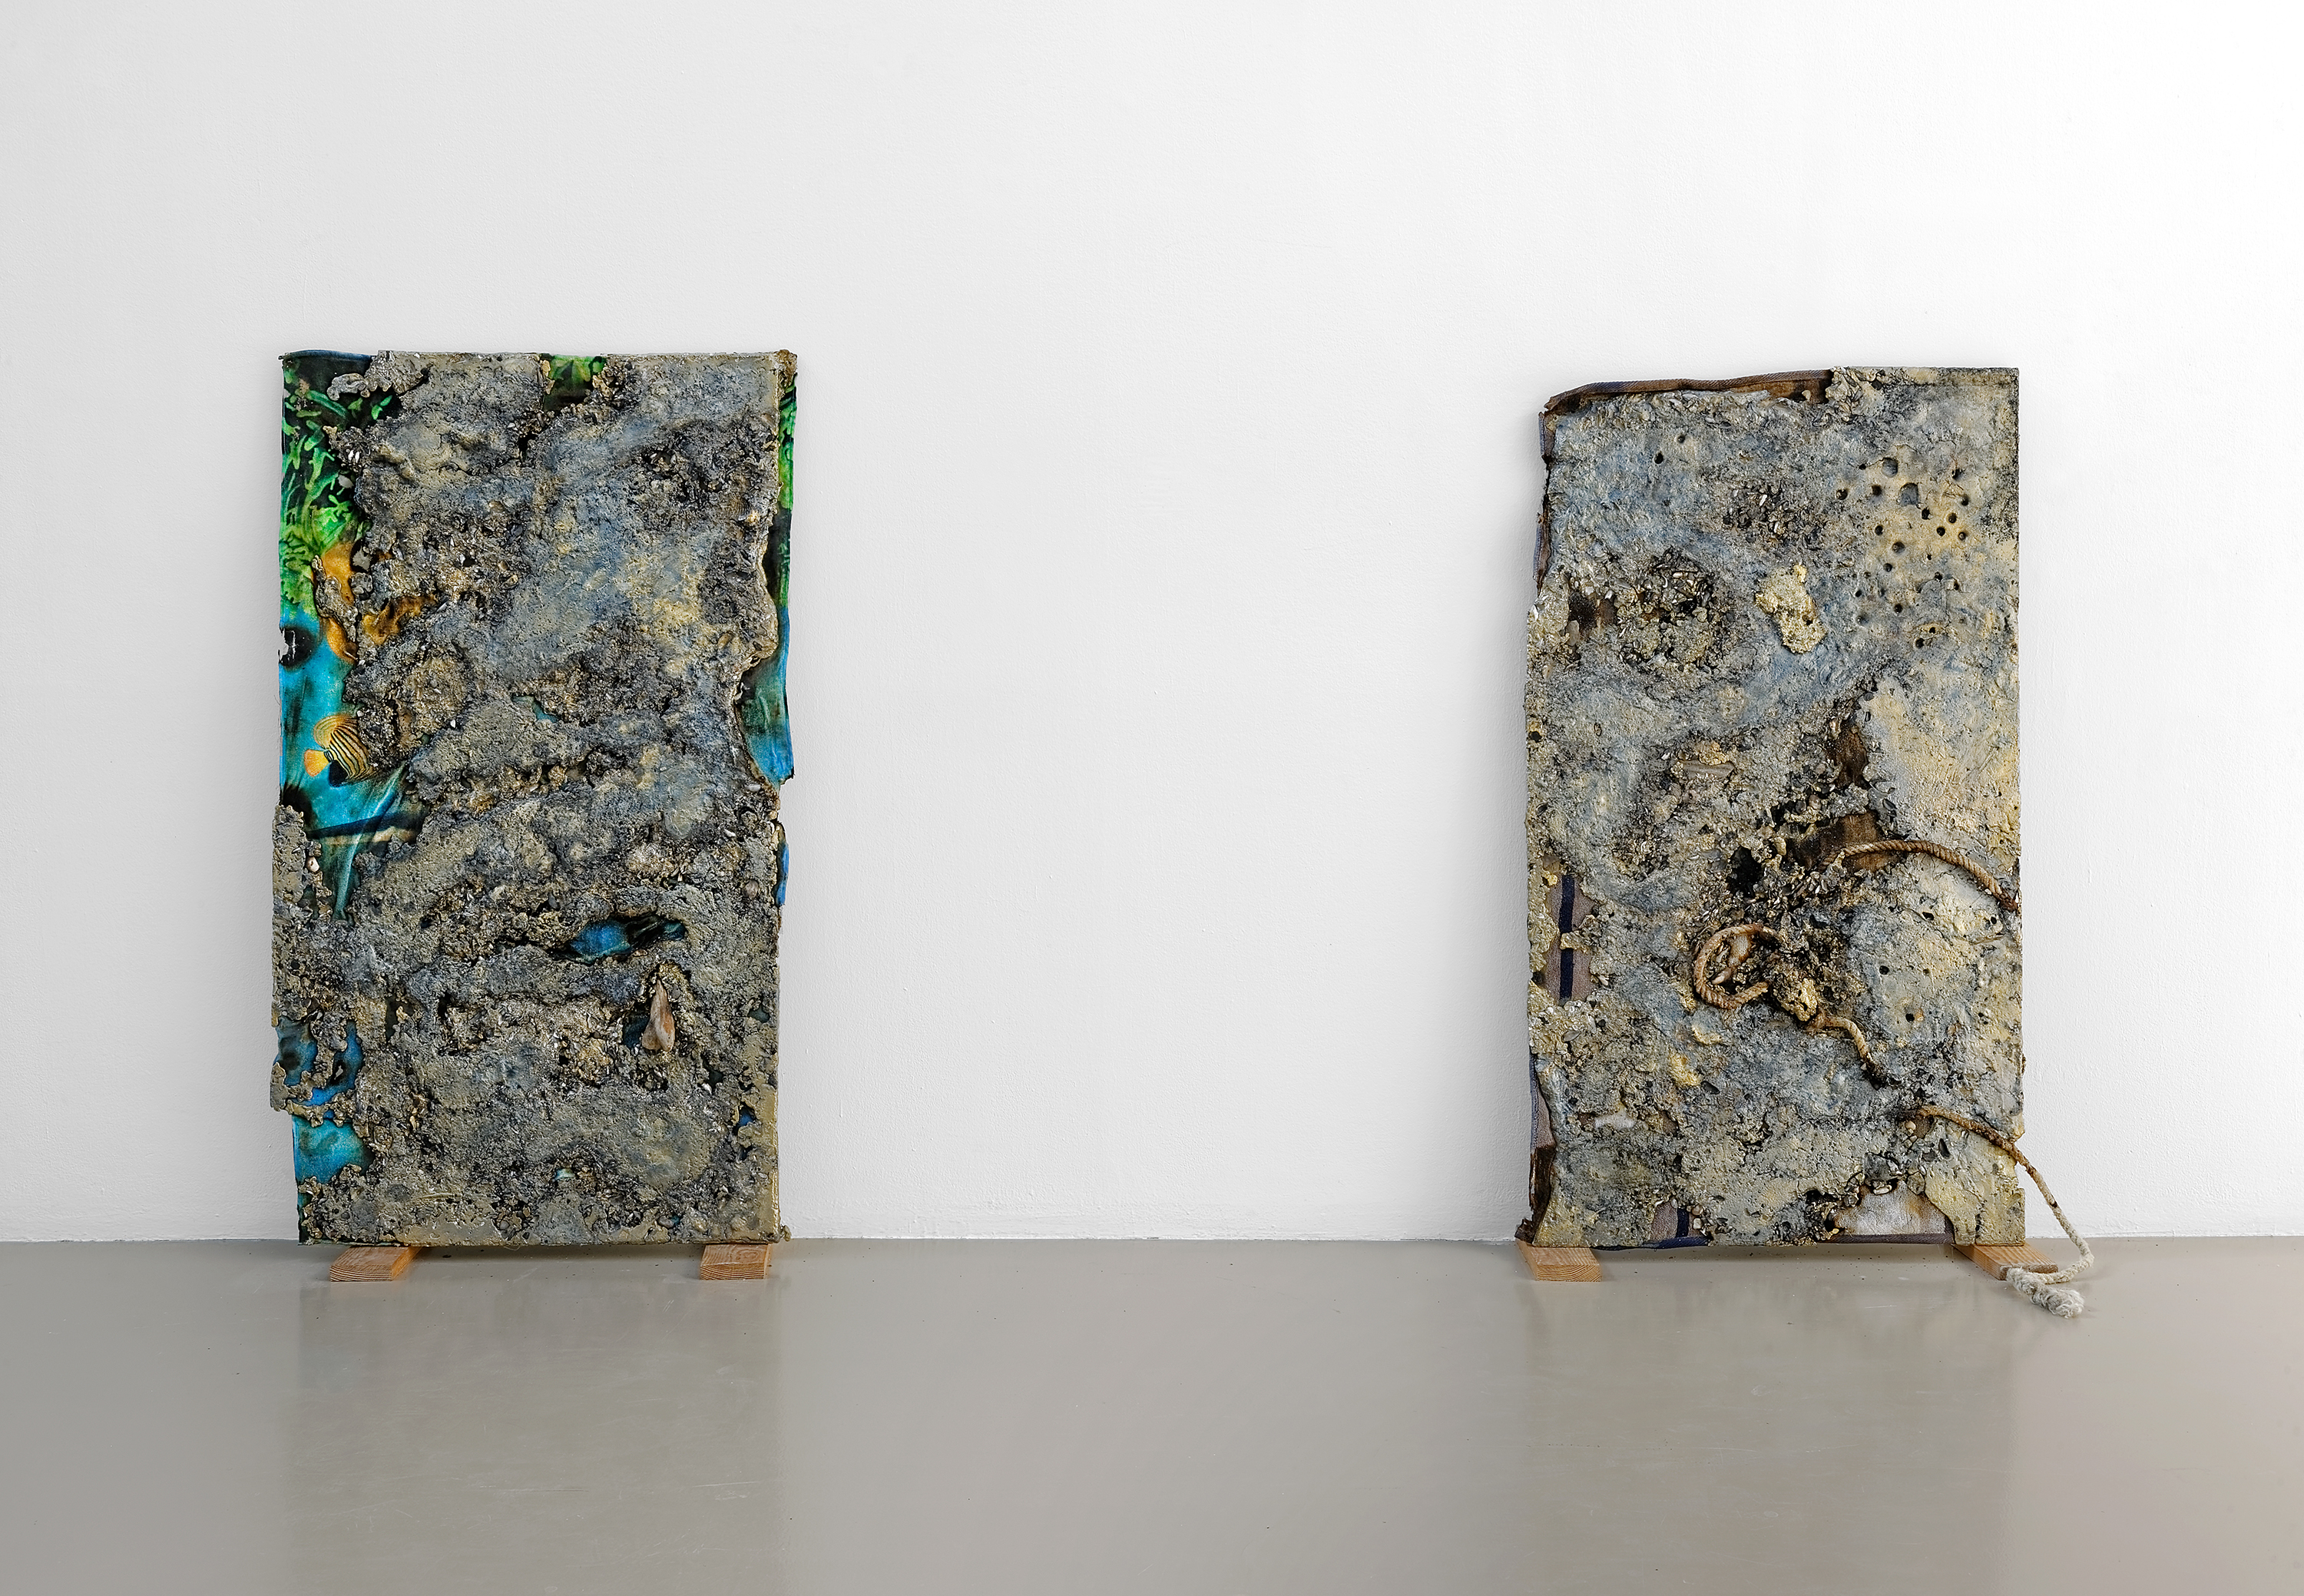 Sea Brass (Towel Blue and Fish), 2012 /Sea Brass (Rope), 2012 |  | ProjecteSD